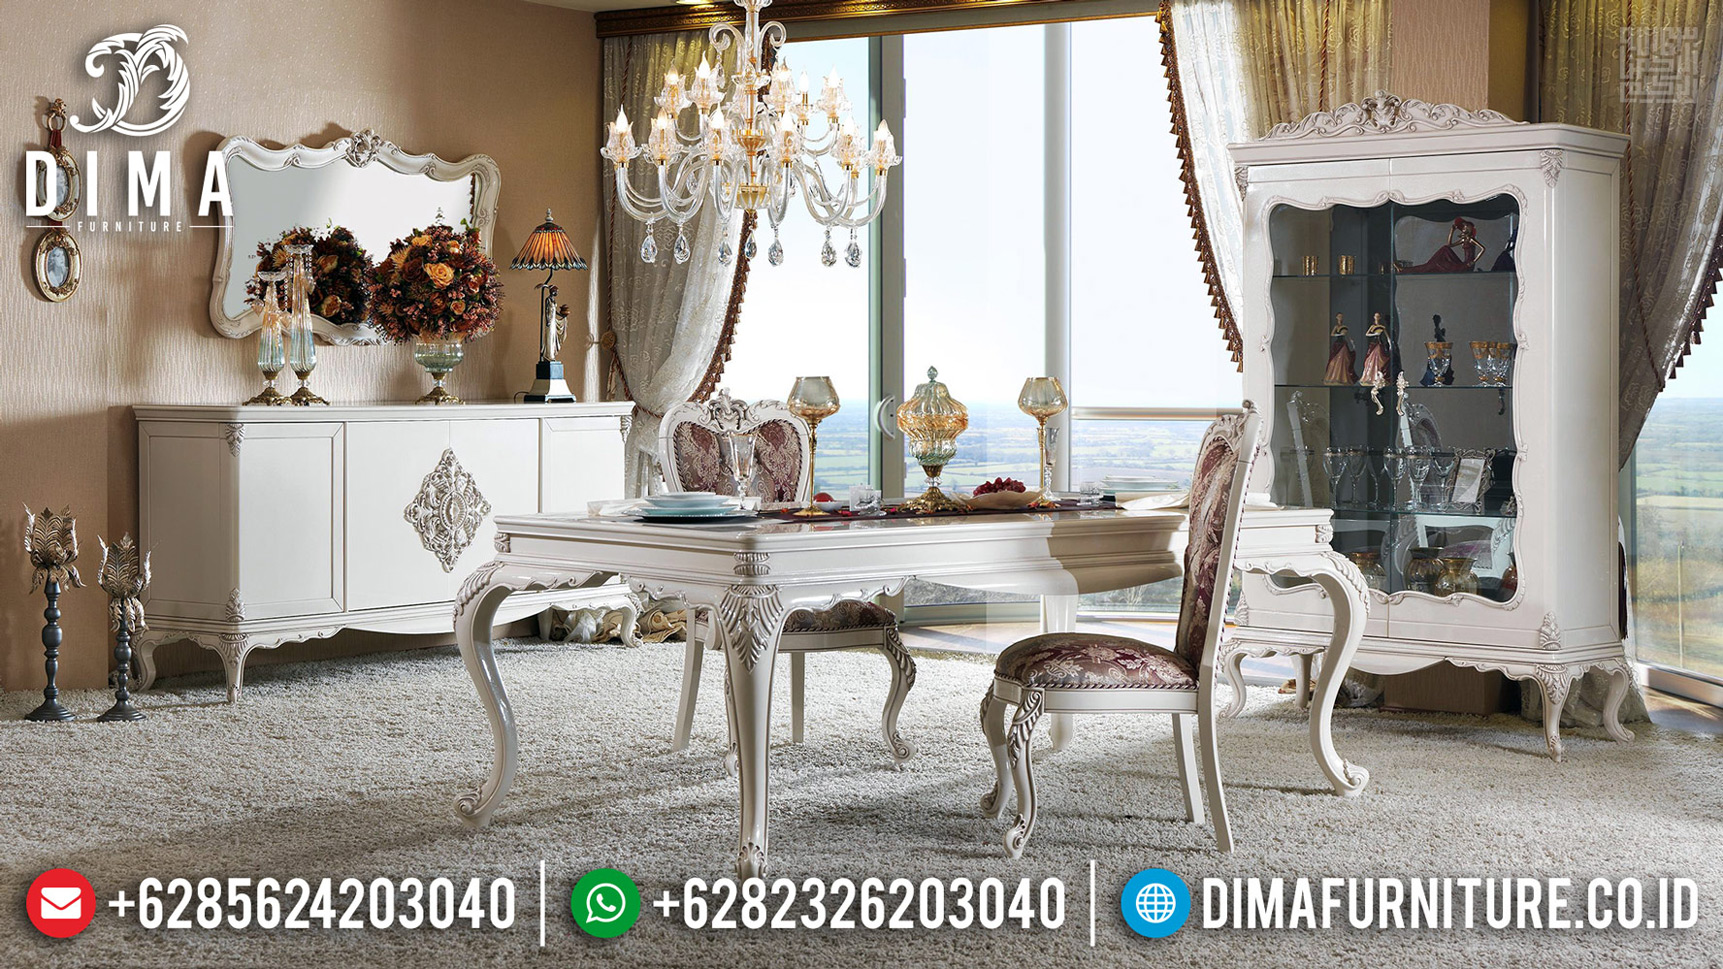 Furniture Jepara Meja Makan Mewah Classy Luxury New Design 2020 MMJ-0673